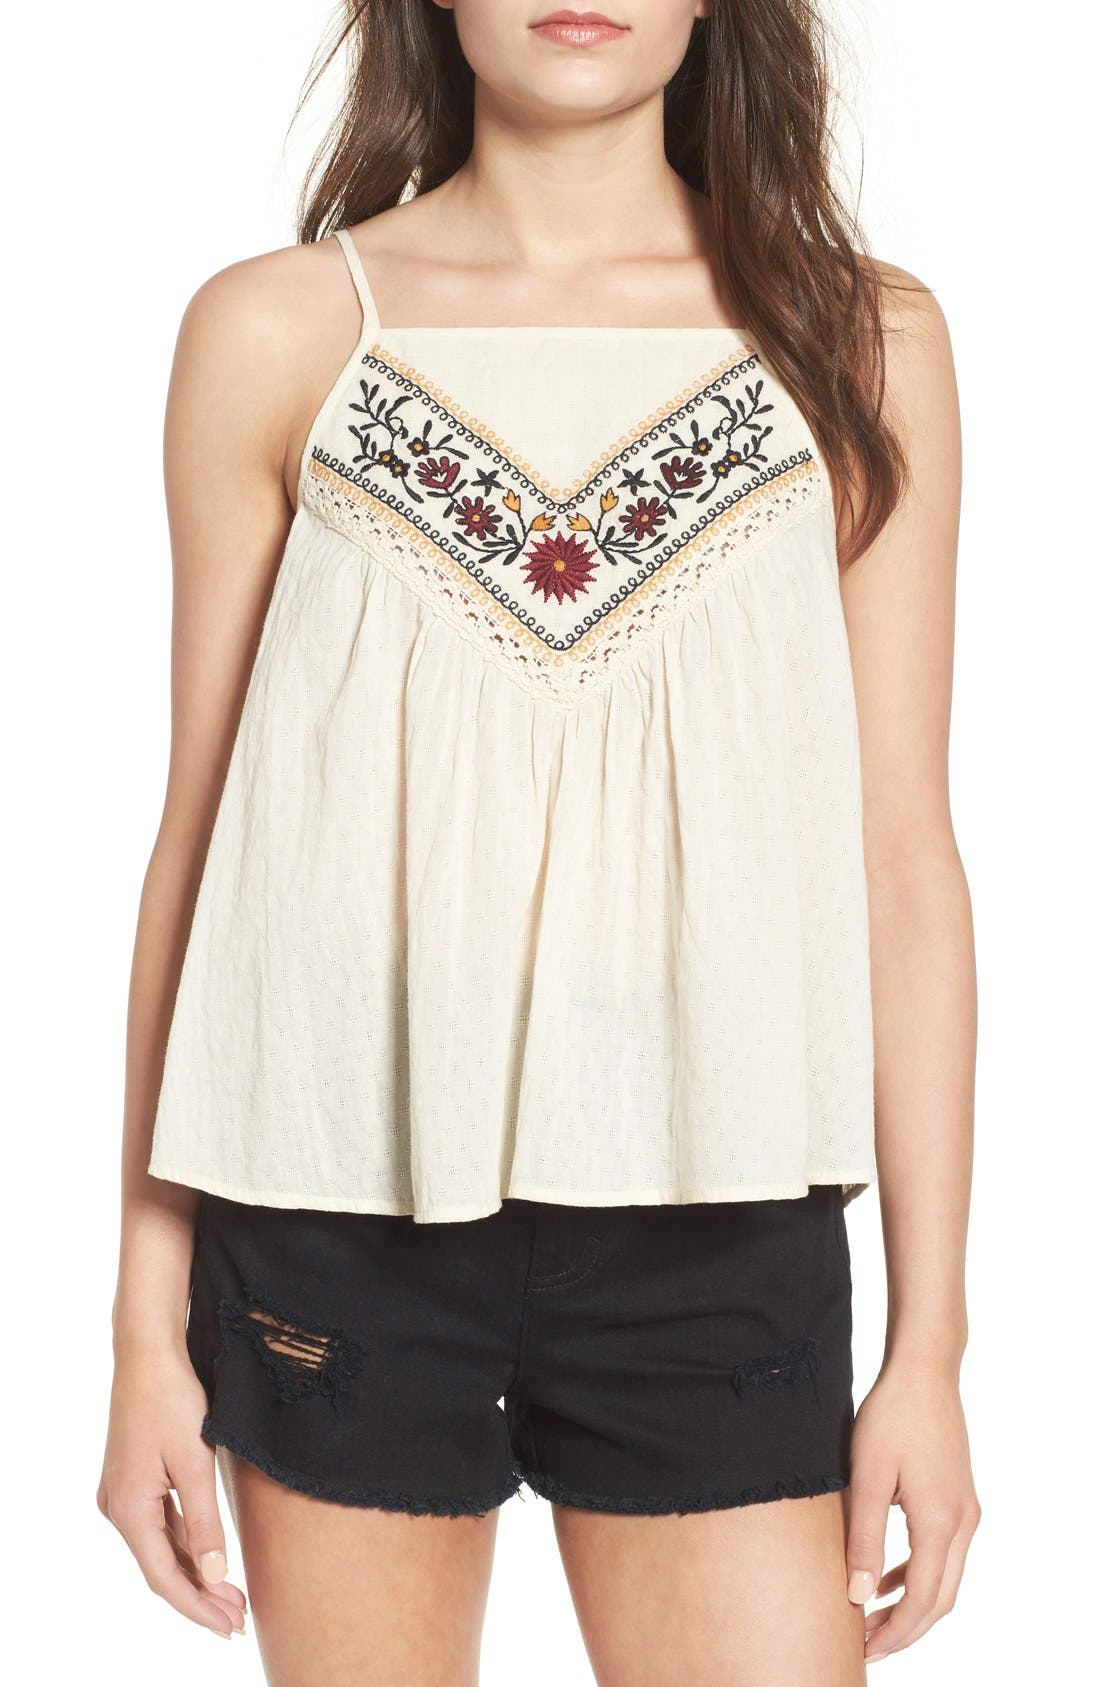 Alternate Image 1 Selected - Band of Gypsies Embroidered Woven Tank